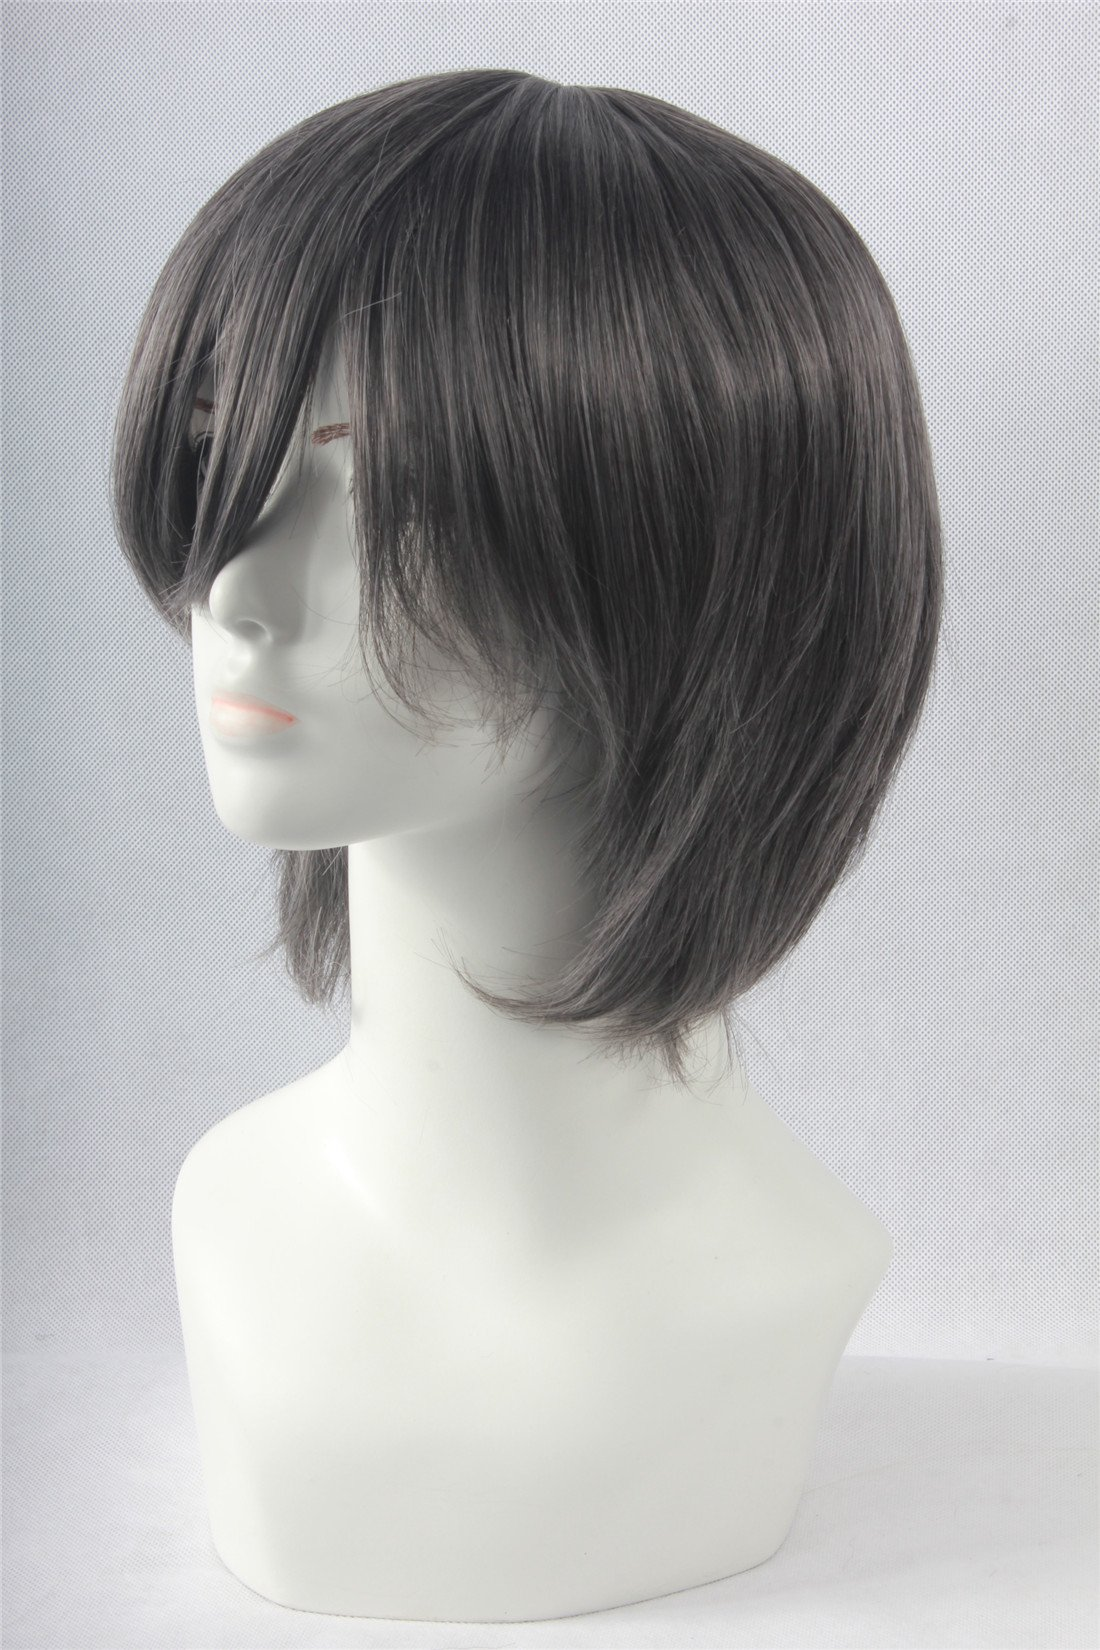 Icoser Anime Cosplay Party Wigs for Halloween Short Green Synthetic Hair 12'' 190g (Gray) by i-coser (Image #2)